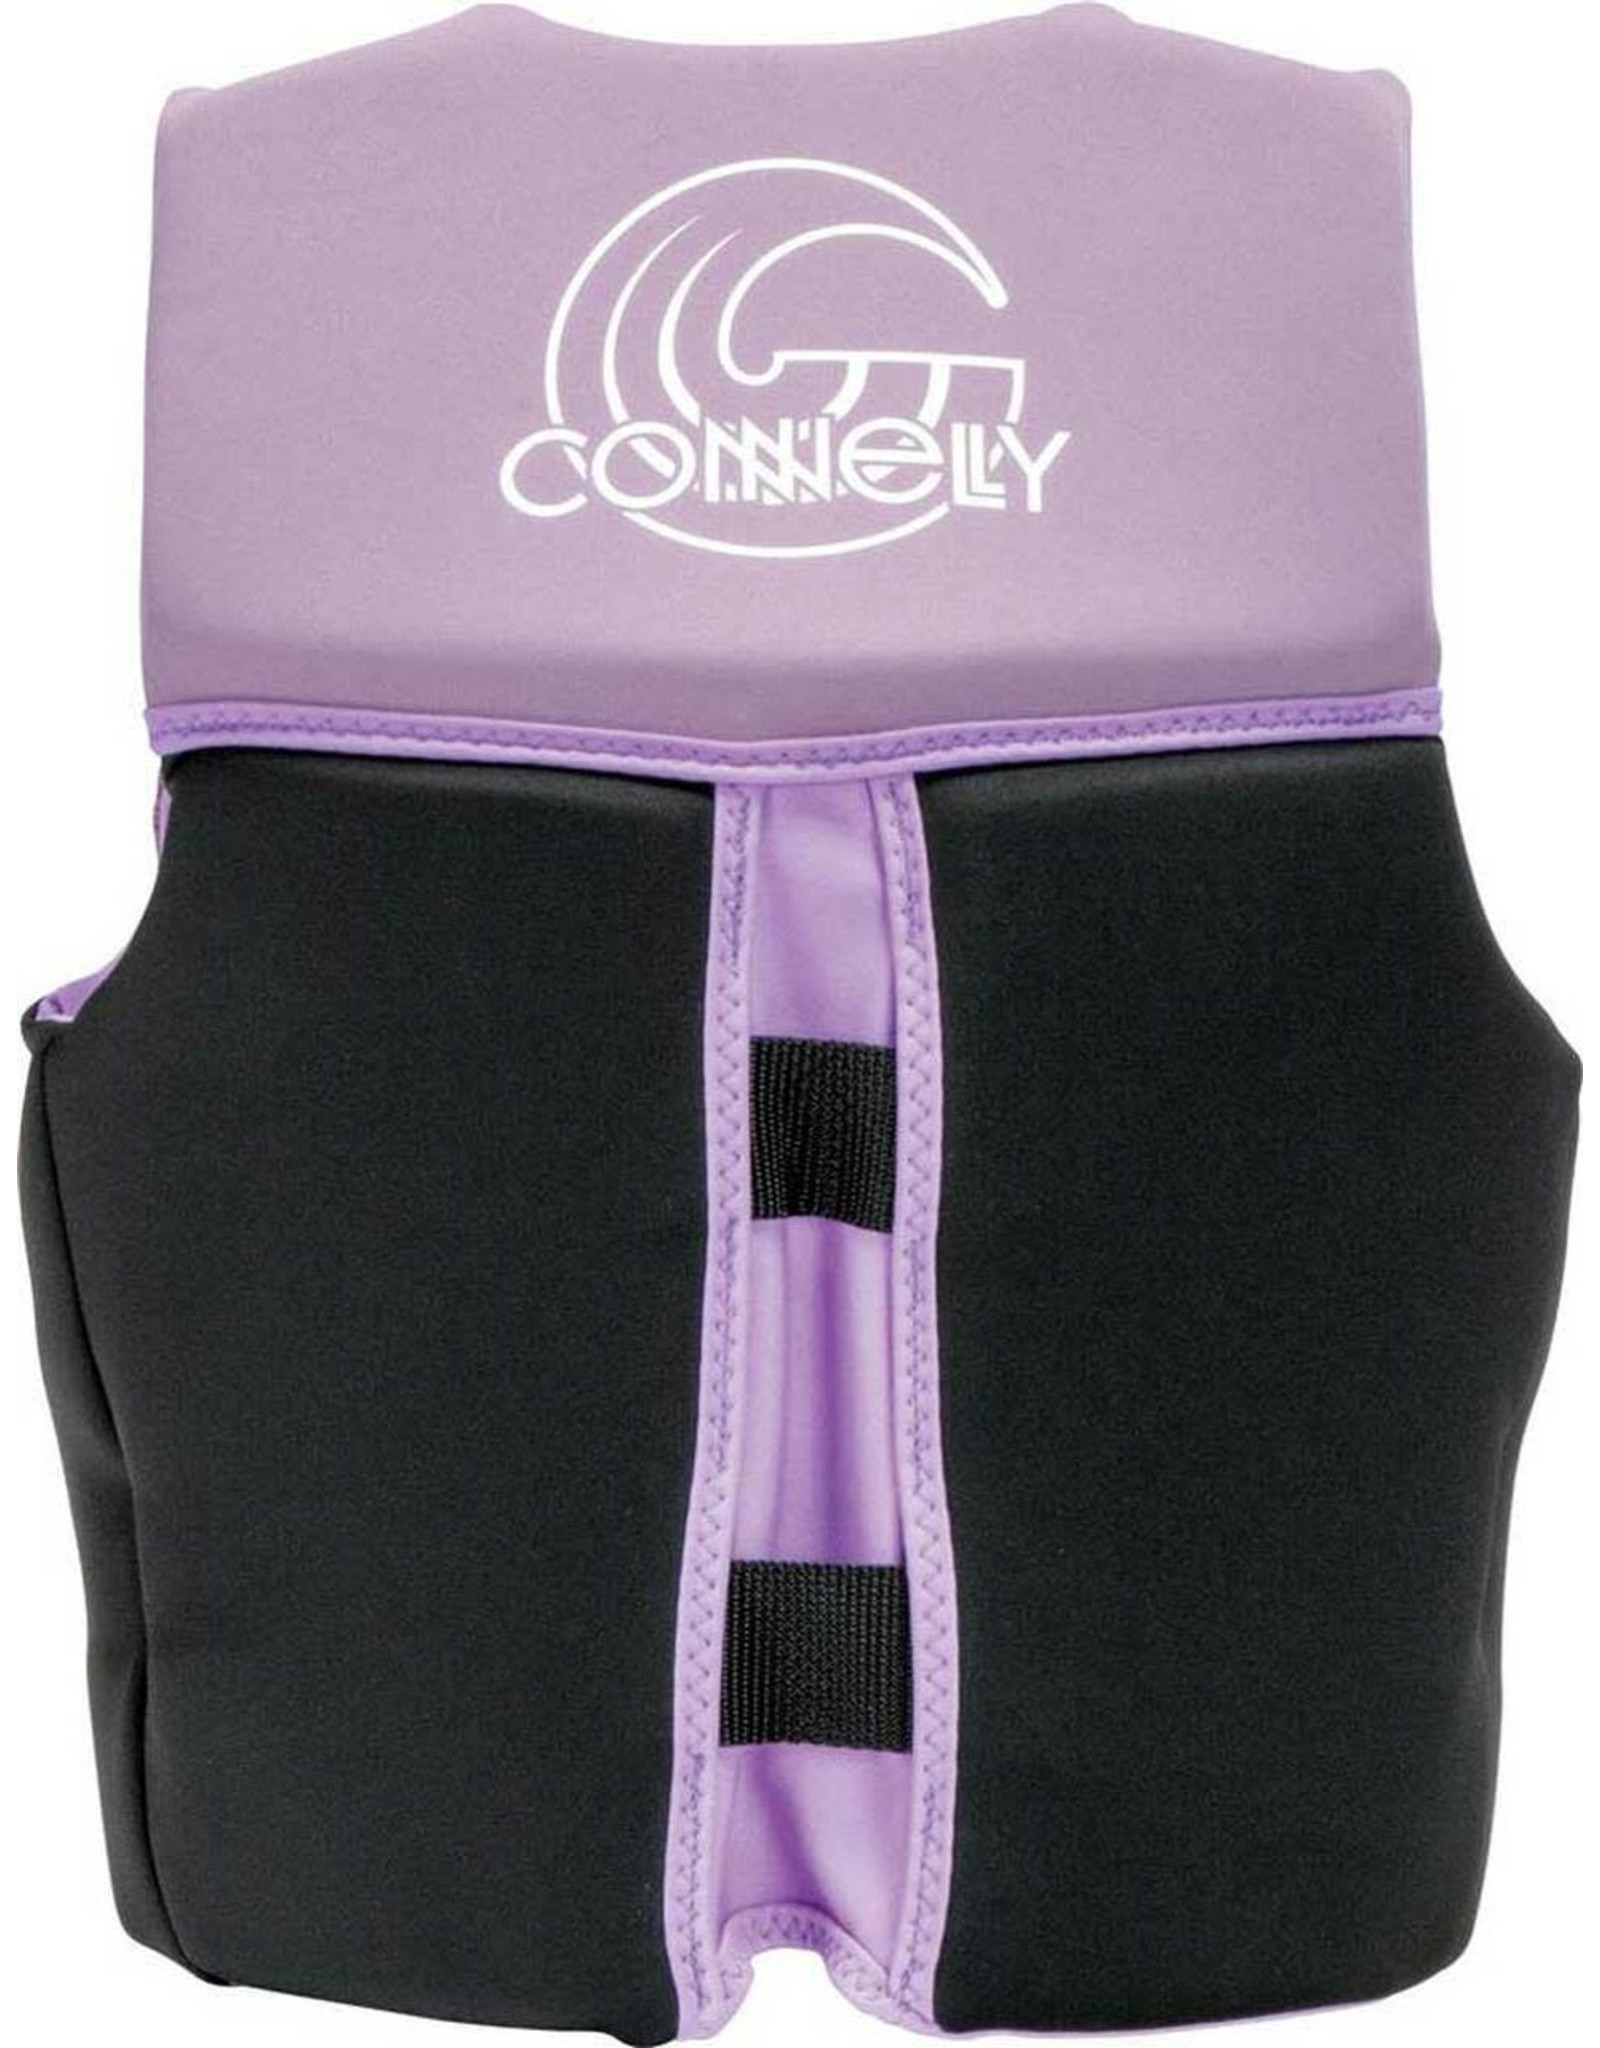 Connelly GIRLS YOUTH CLASSIC NEO VEST - LARGE (60-90lbs)